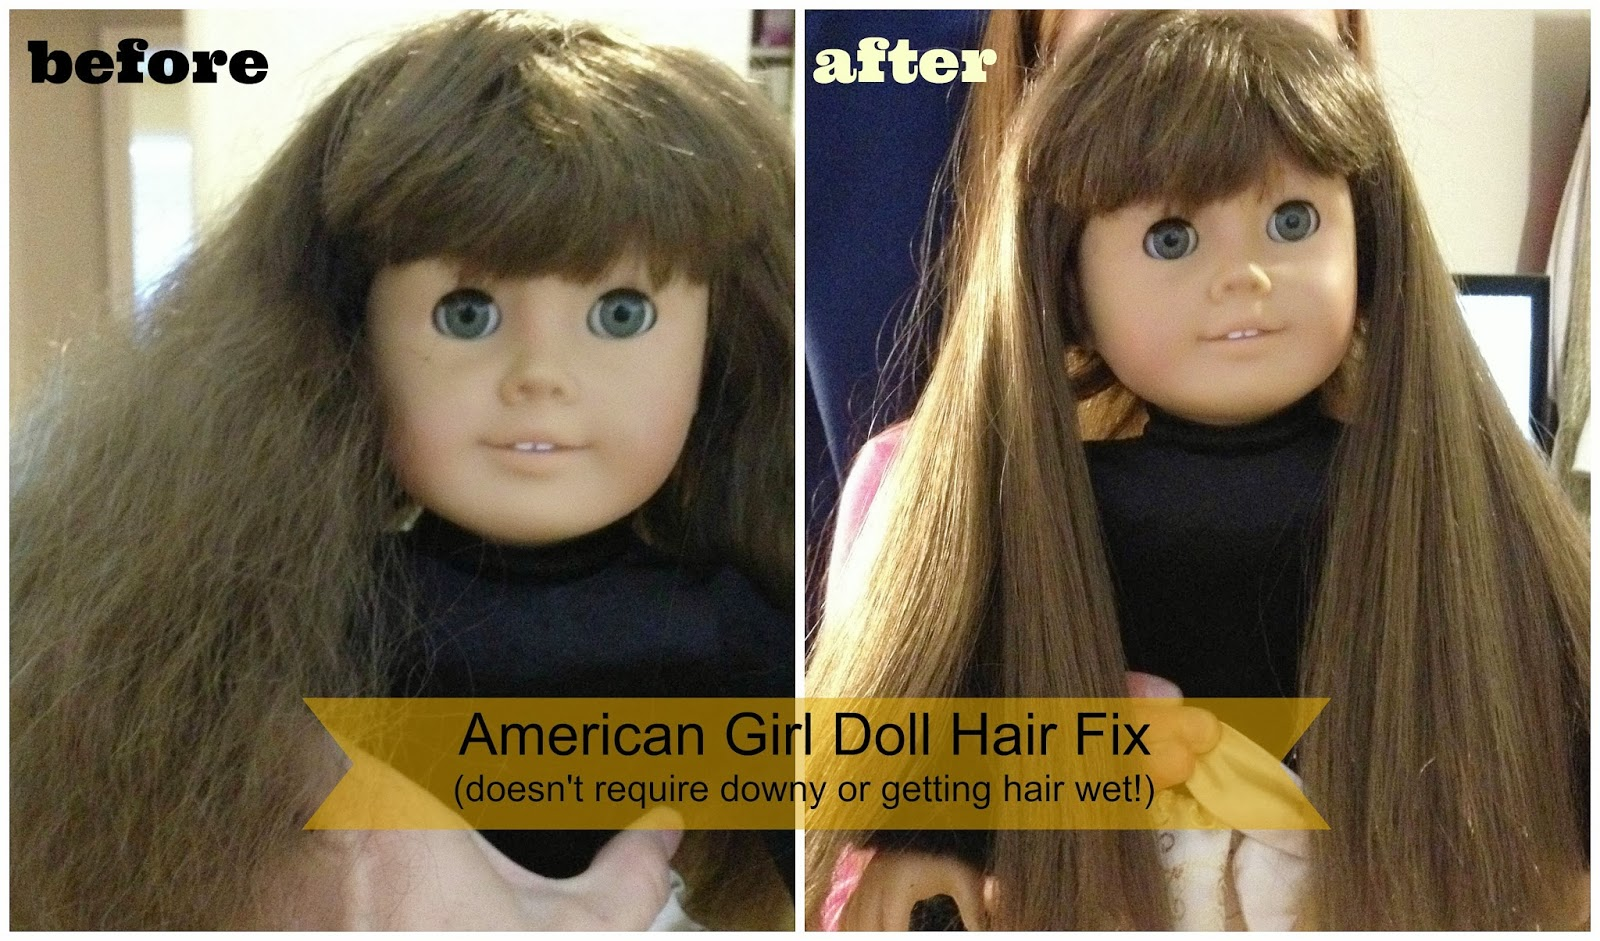 How To Fix American Girl Doll Hair A Tutorial With Beforeafter - American girl doll hairstyle ideas